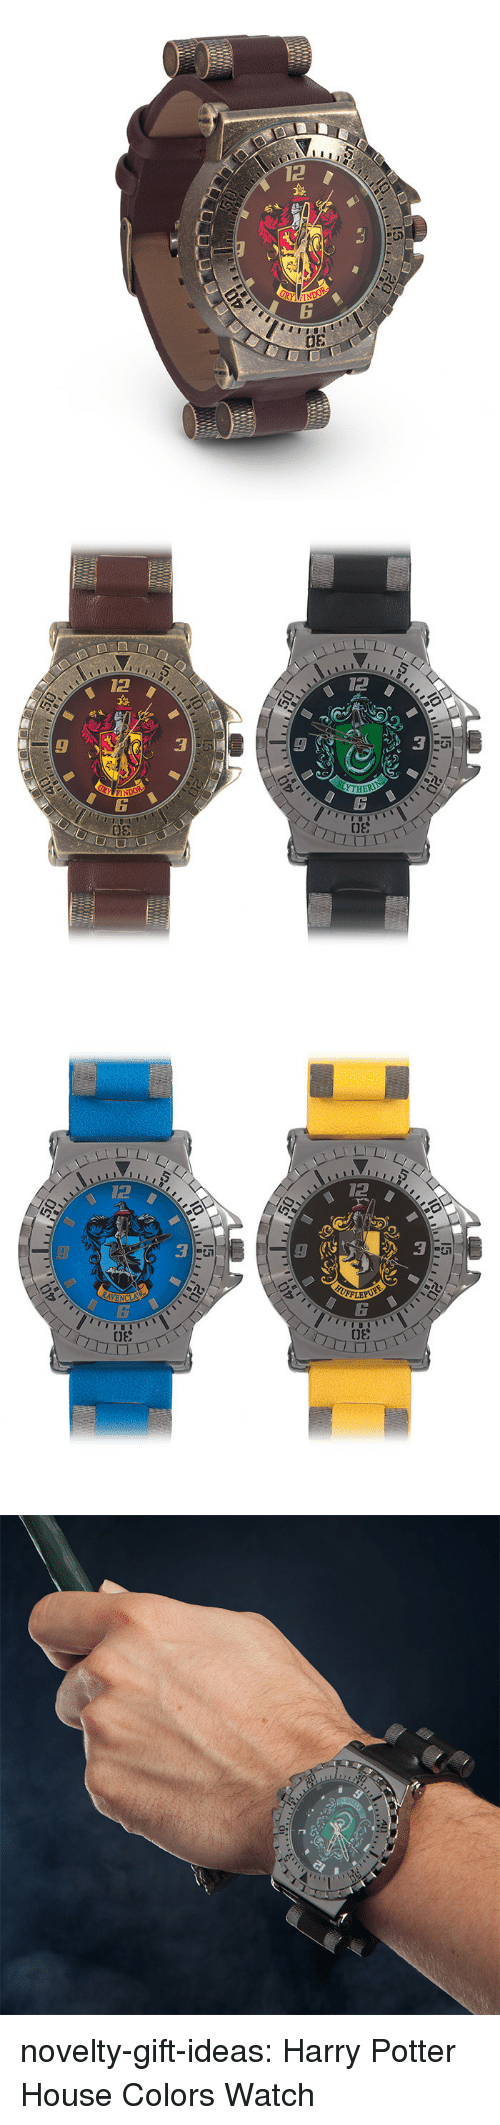 ravenclaw: 30)  30  9  6  Po  CL   10  5  3  5  2  2  9 novelty-gift-ideas:  Harry Potter House Colors Watch